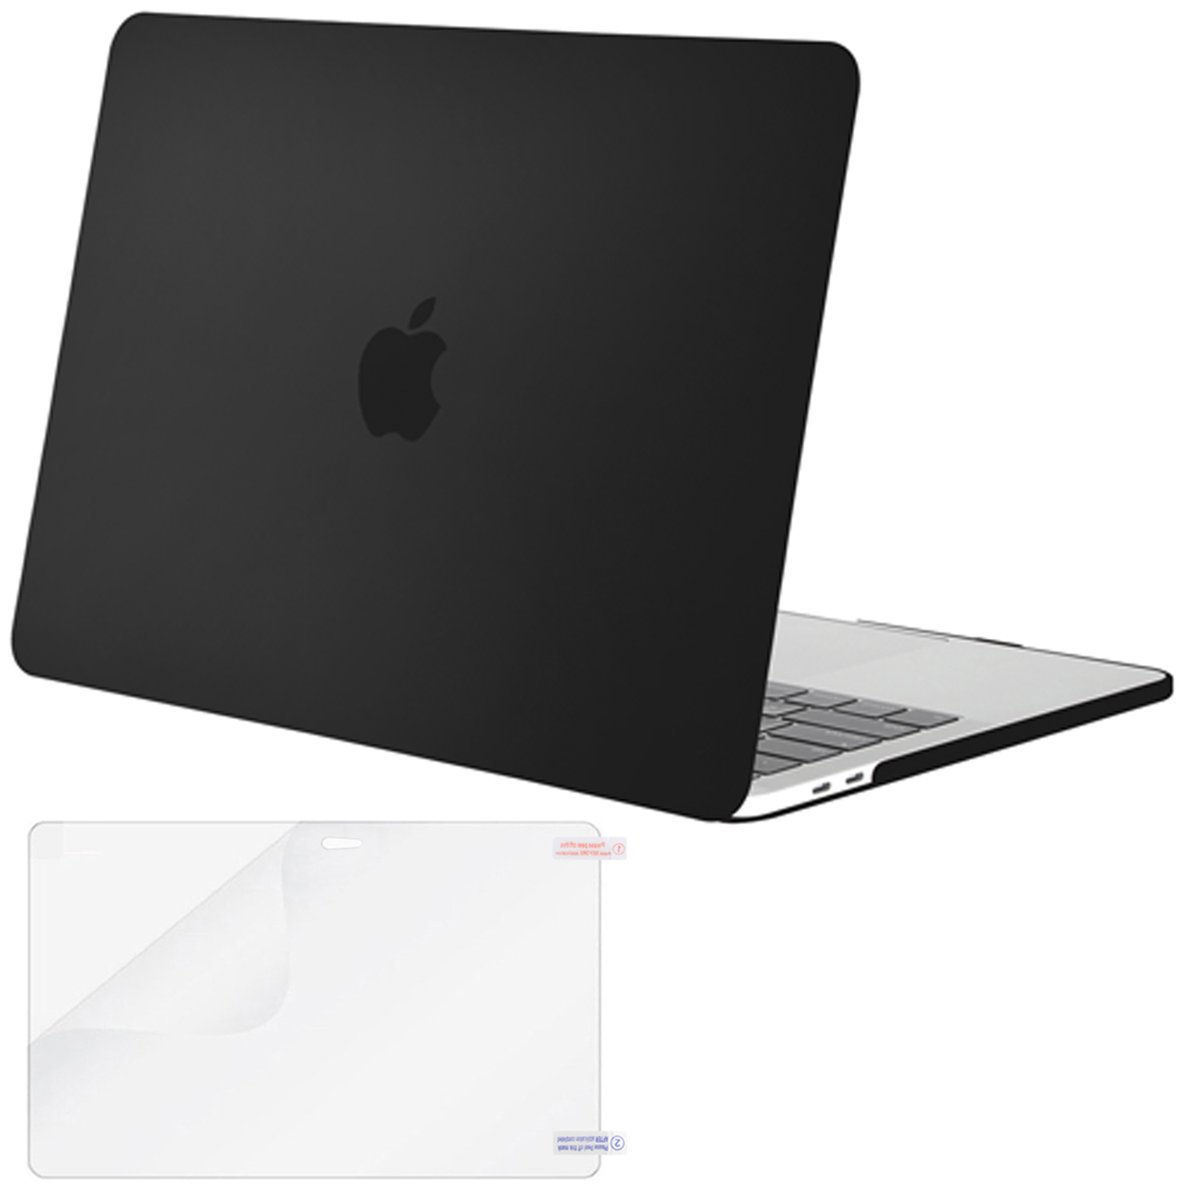 MOSISO MacBook Pro 13 Case 2018 2017 2016 Release A1989/A1706/A1708, Plastic Hard Shell Cover with Screen Protector Compatible Newest MacBook Pro 13 Inch with/Without Touch Bar, Black